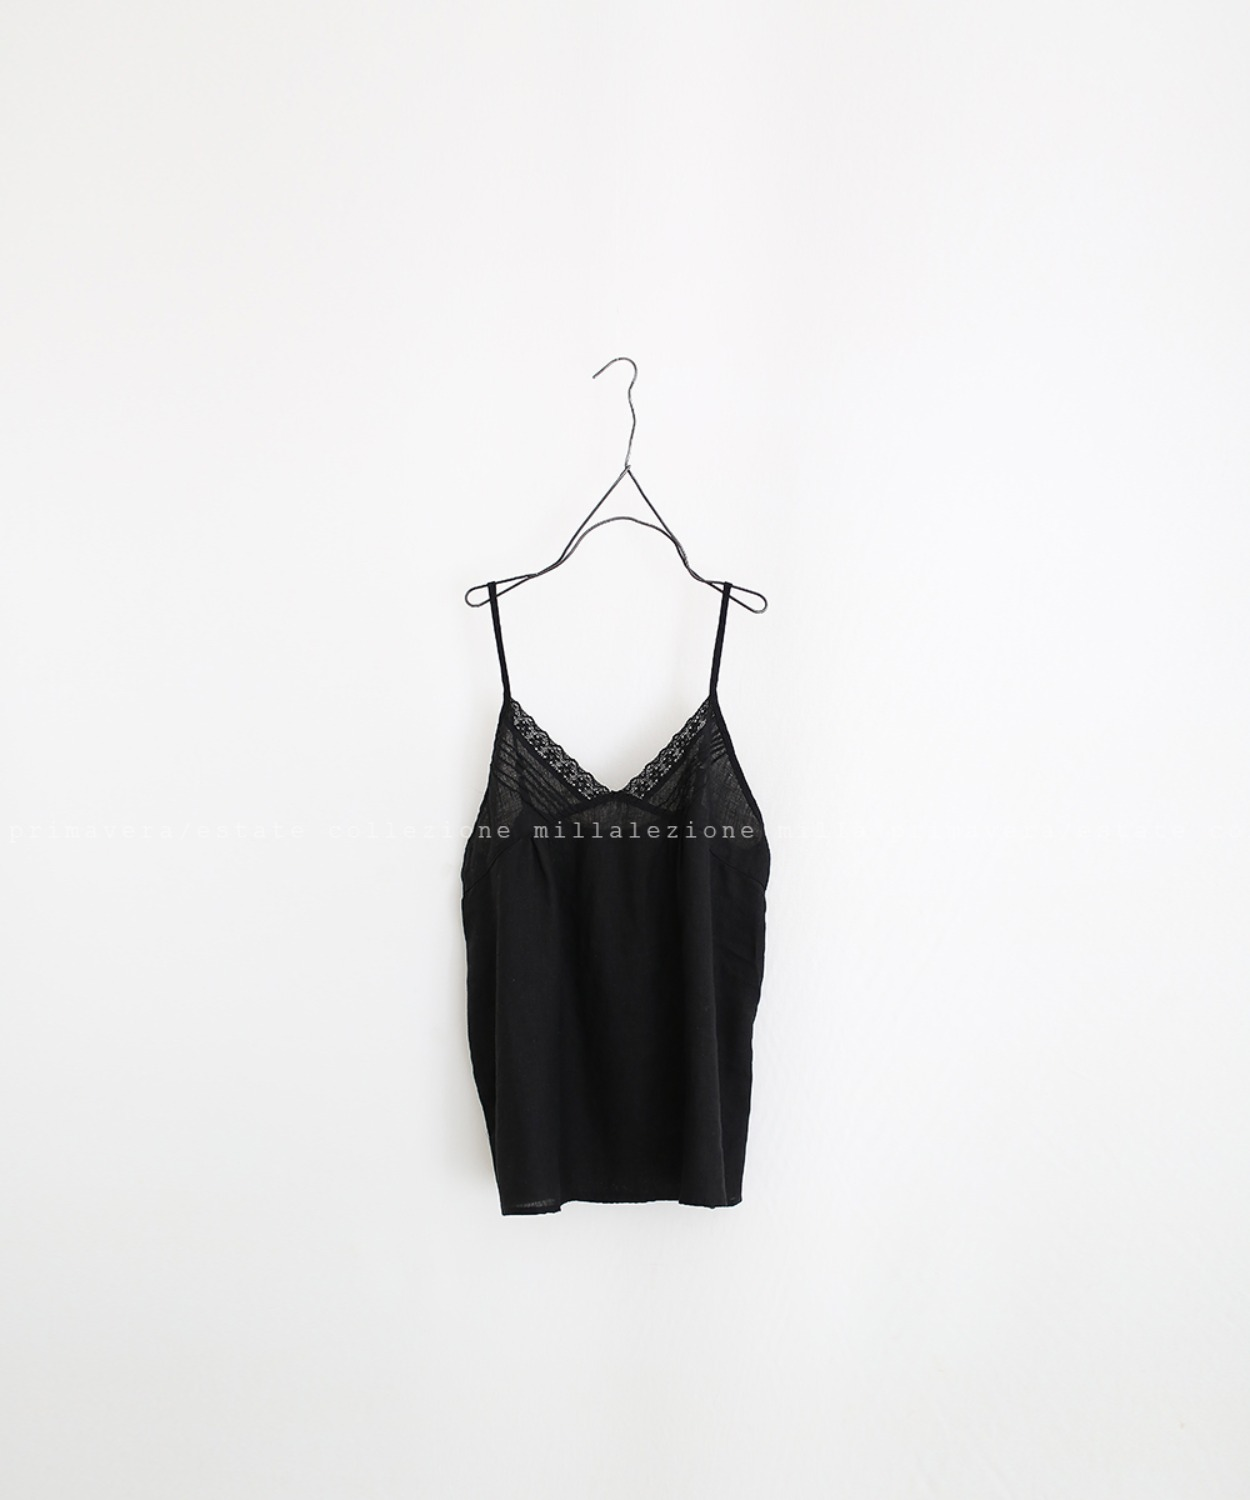 N°030 camisole